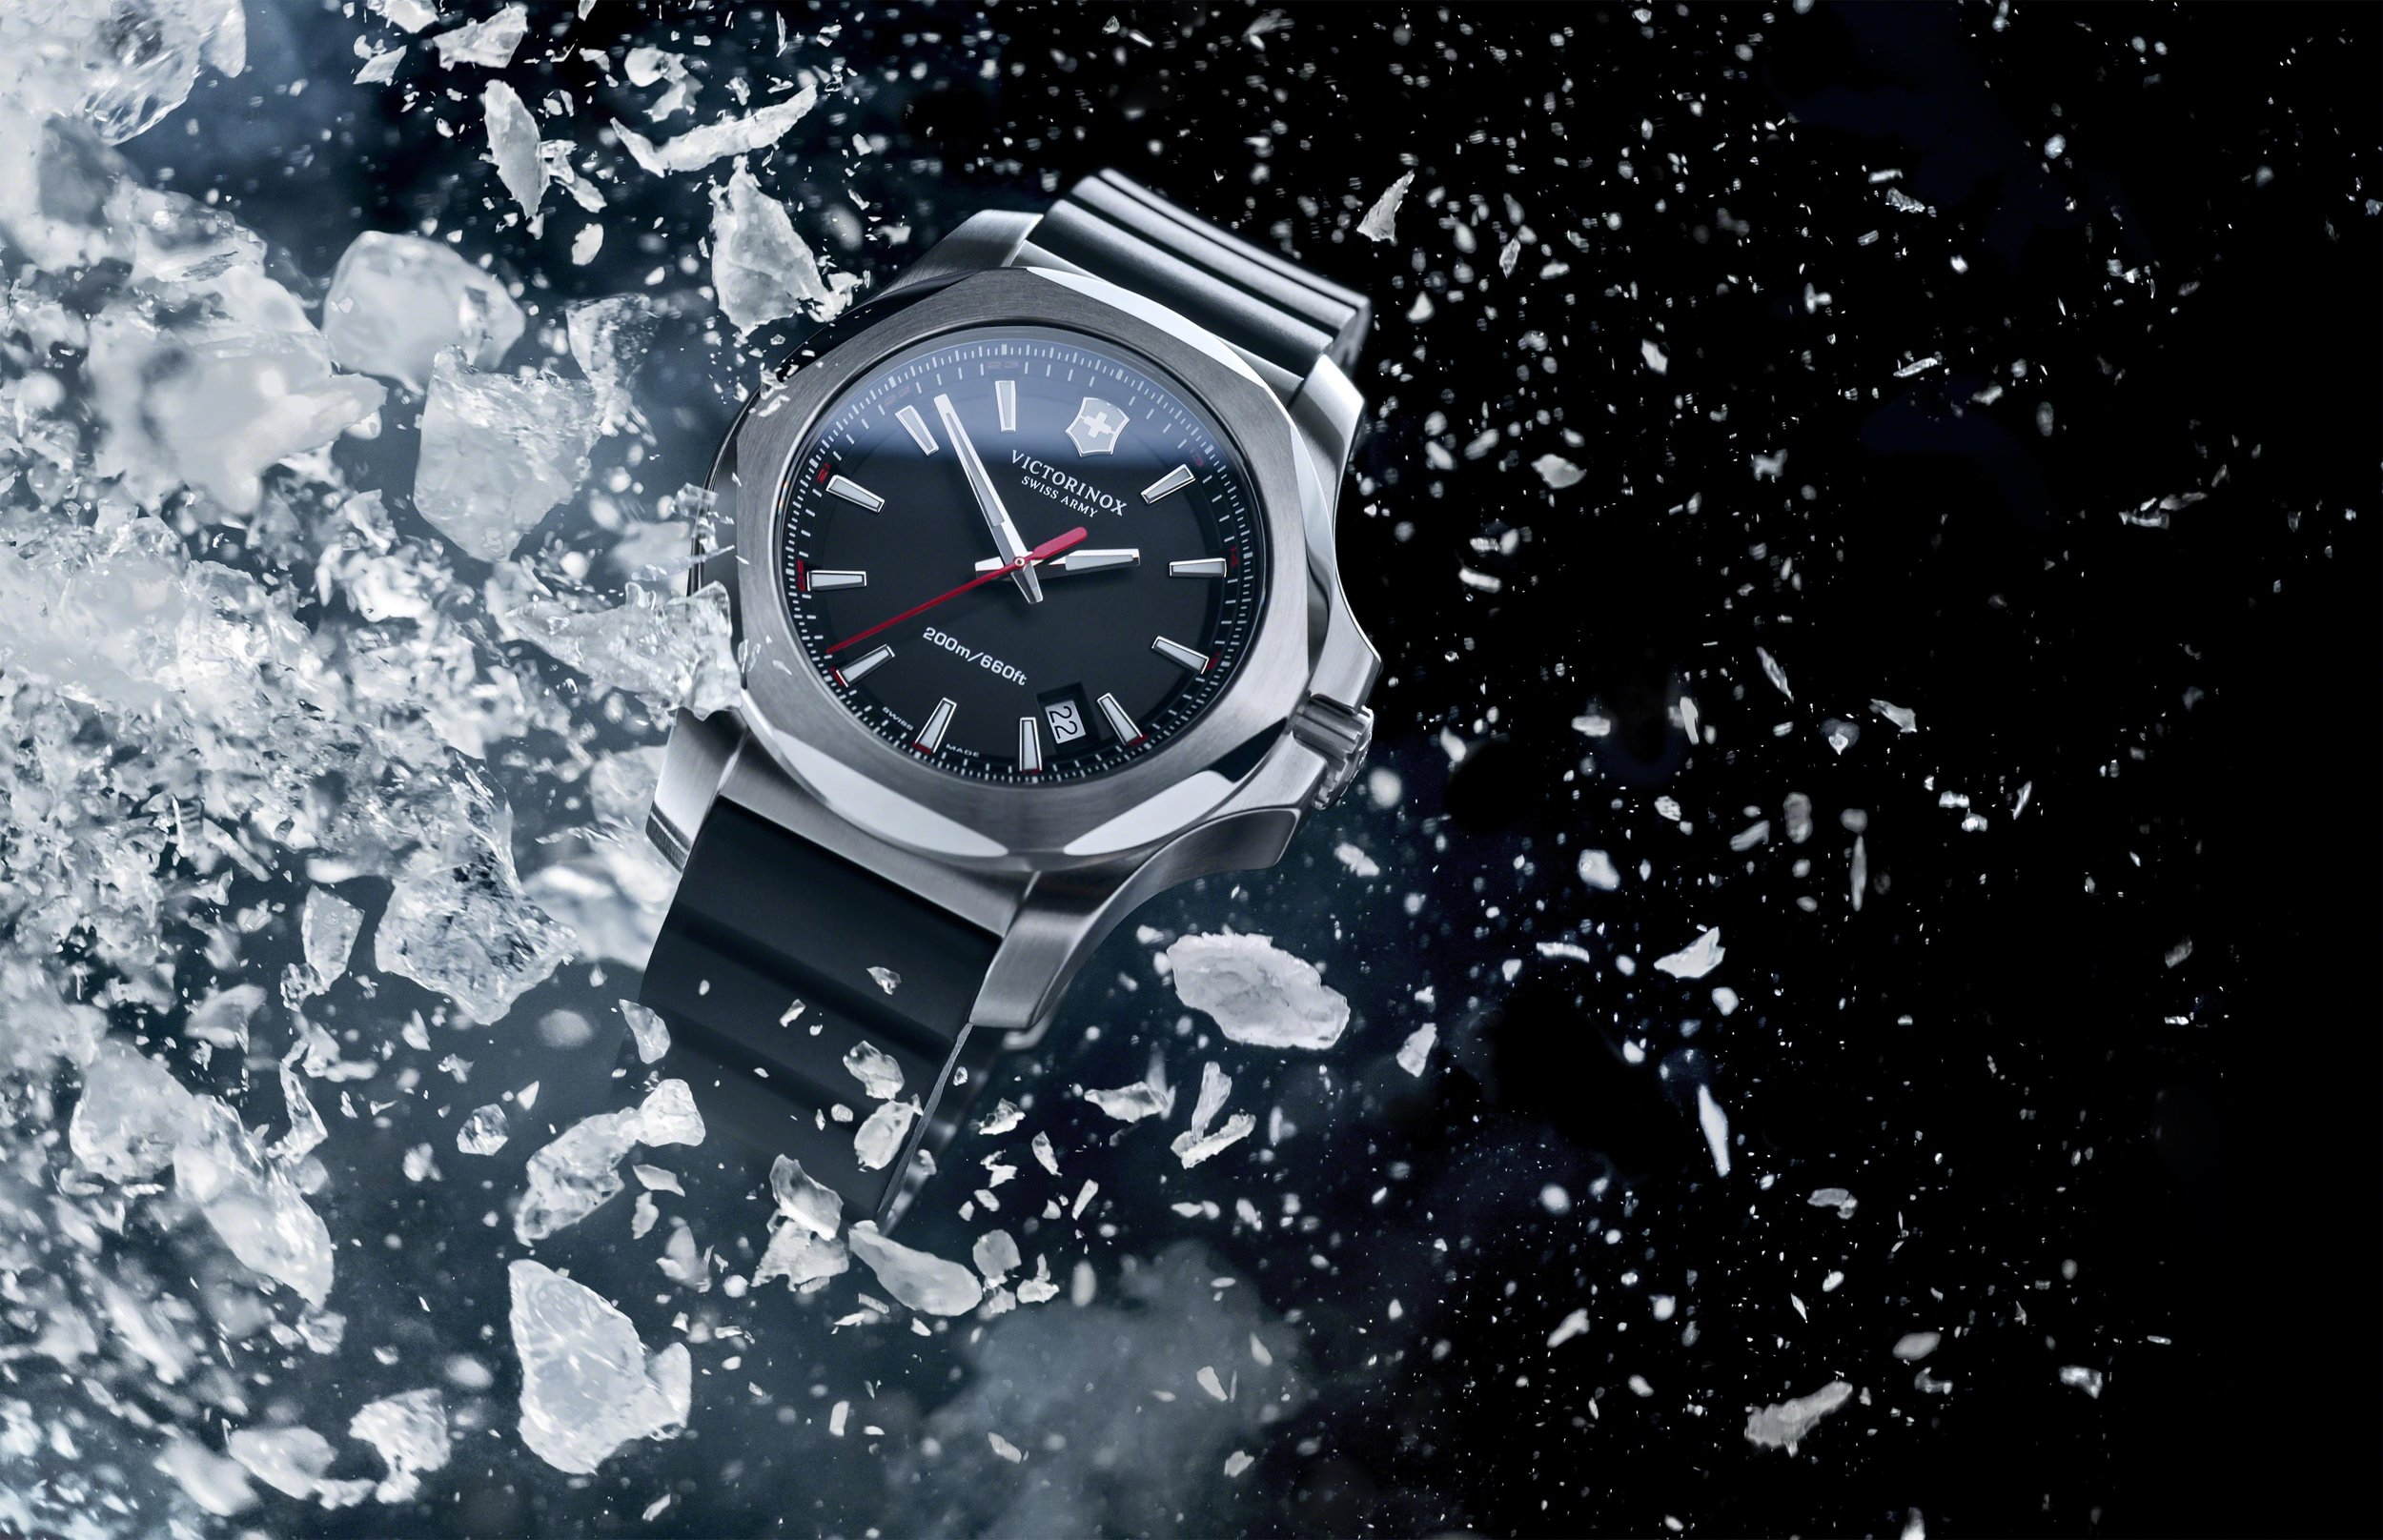 The new rugged yet stylish Victorinox Army Swiss INOX watch.